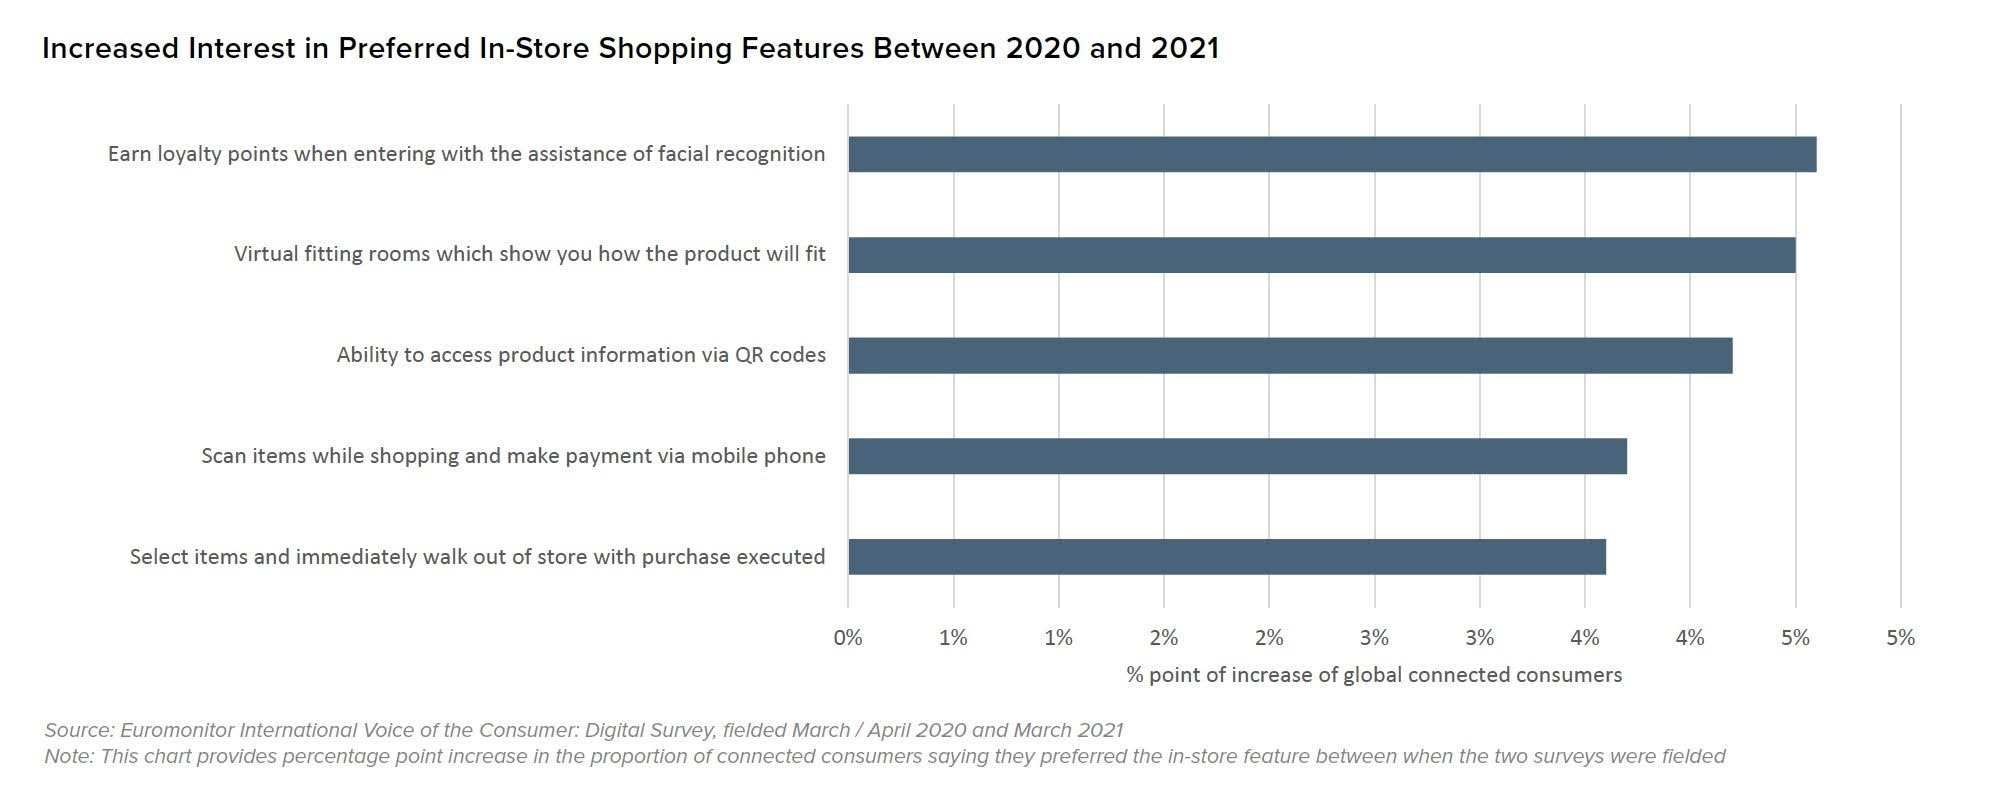 Increased Interest in Preferred In-Store Shopping Features Between 2020 and 2021. Source: Euromonitor International Voice of the Consumer: Digital Survey, fielded March / April 2020 and March 2021. Note: This chart provides percentage point increase in the proportion of connected consumers saying they preferred the in-store feature between when the two surveys were fielded.